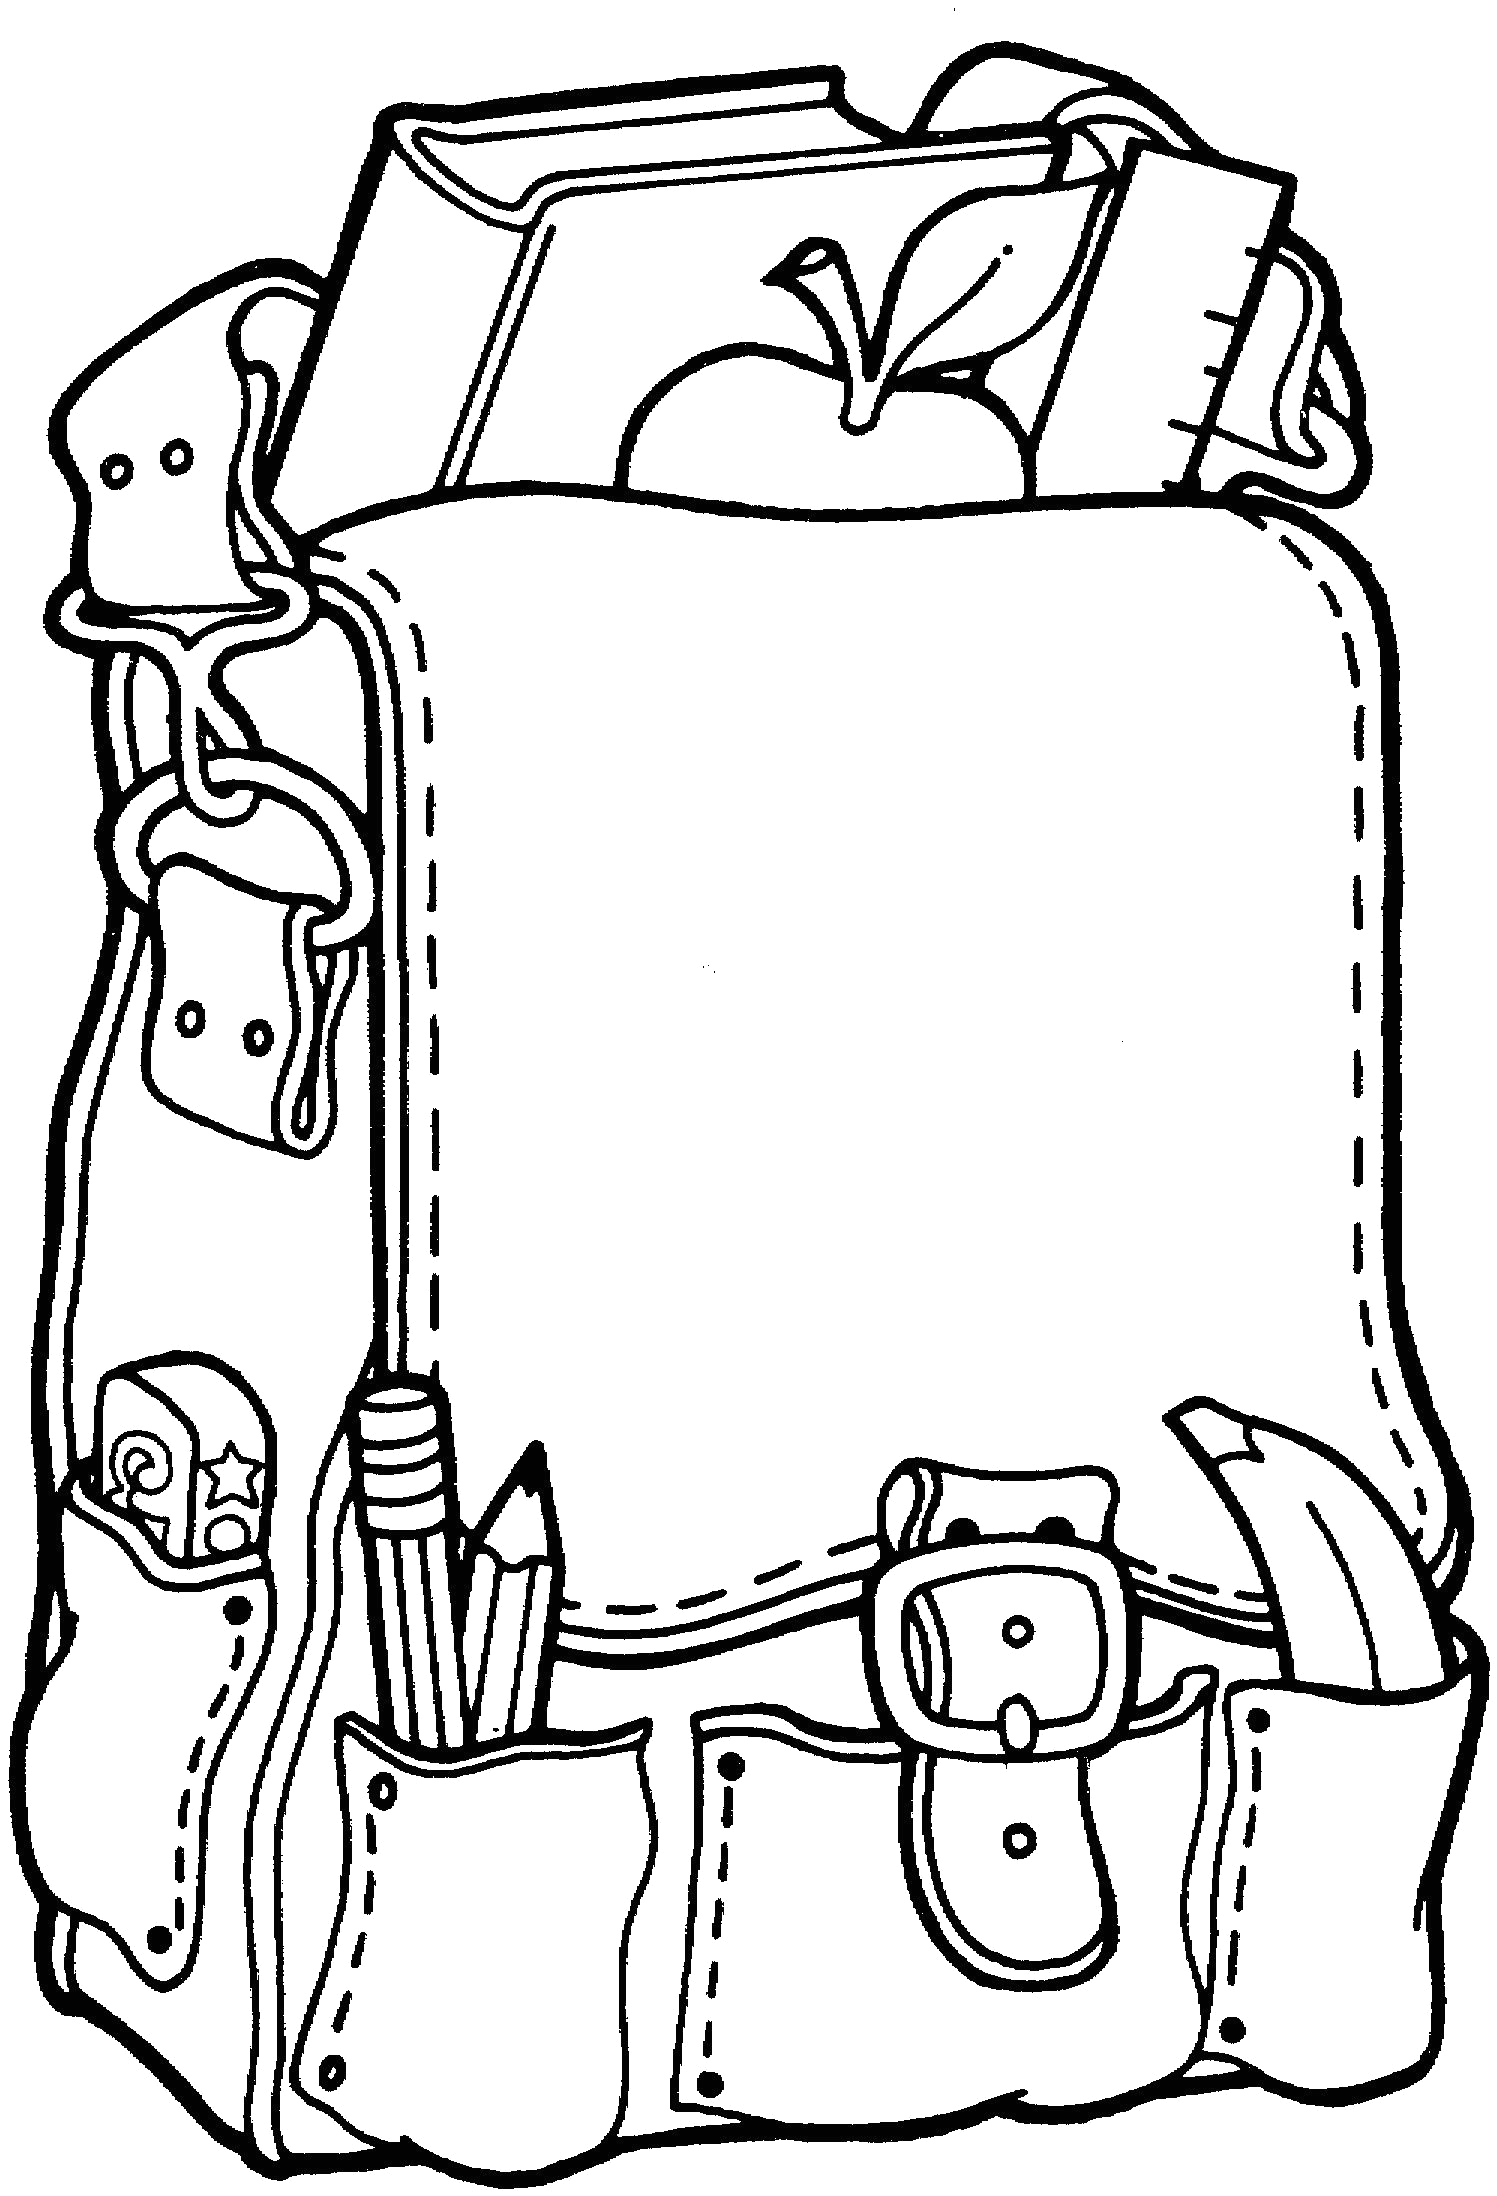 Back to School Coloring Pages for Kindergarten Coloring Pages Printable School